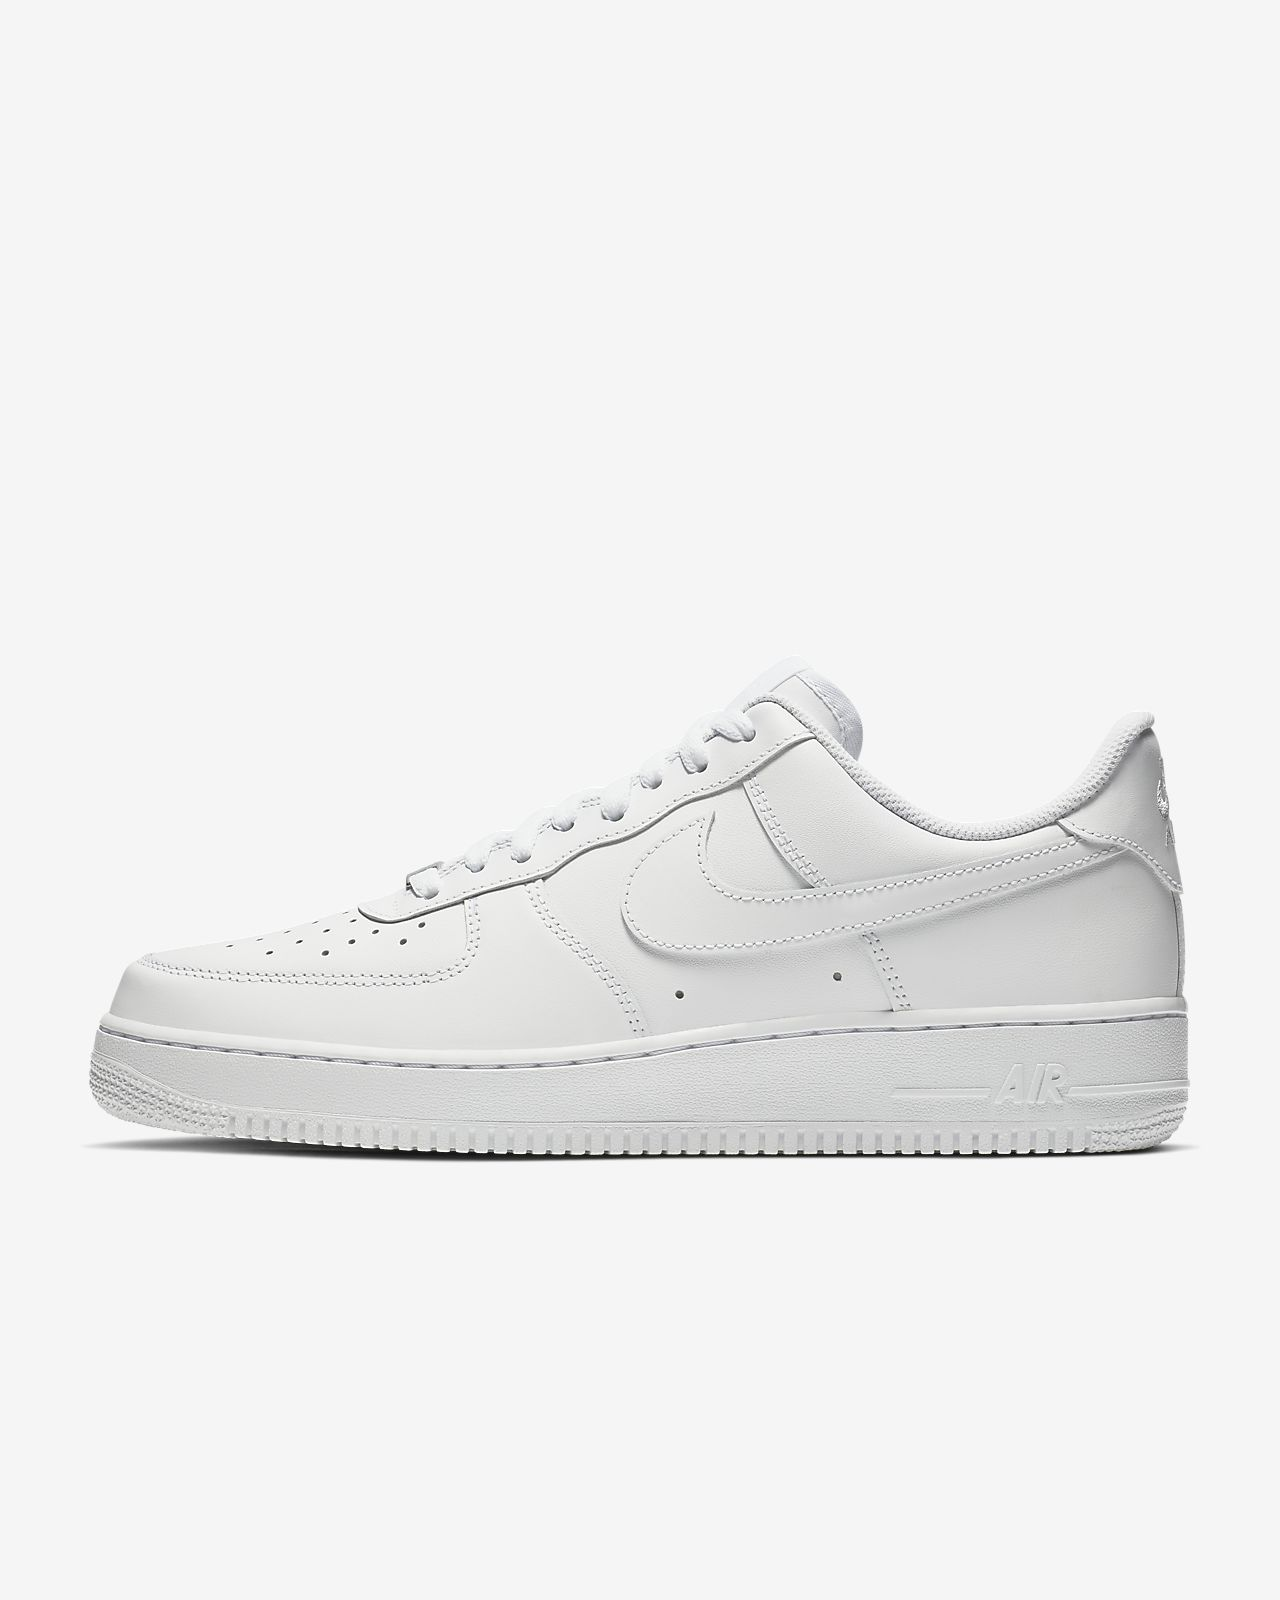 9e34a8f4de53b6 Nike Air Force 1  07 Shoe. Nike.com GB